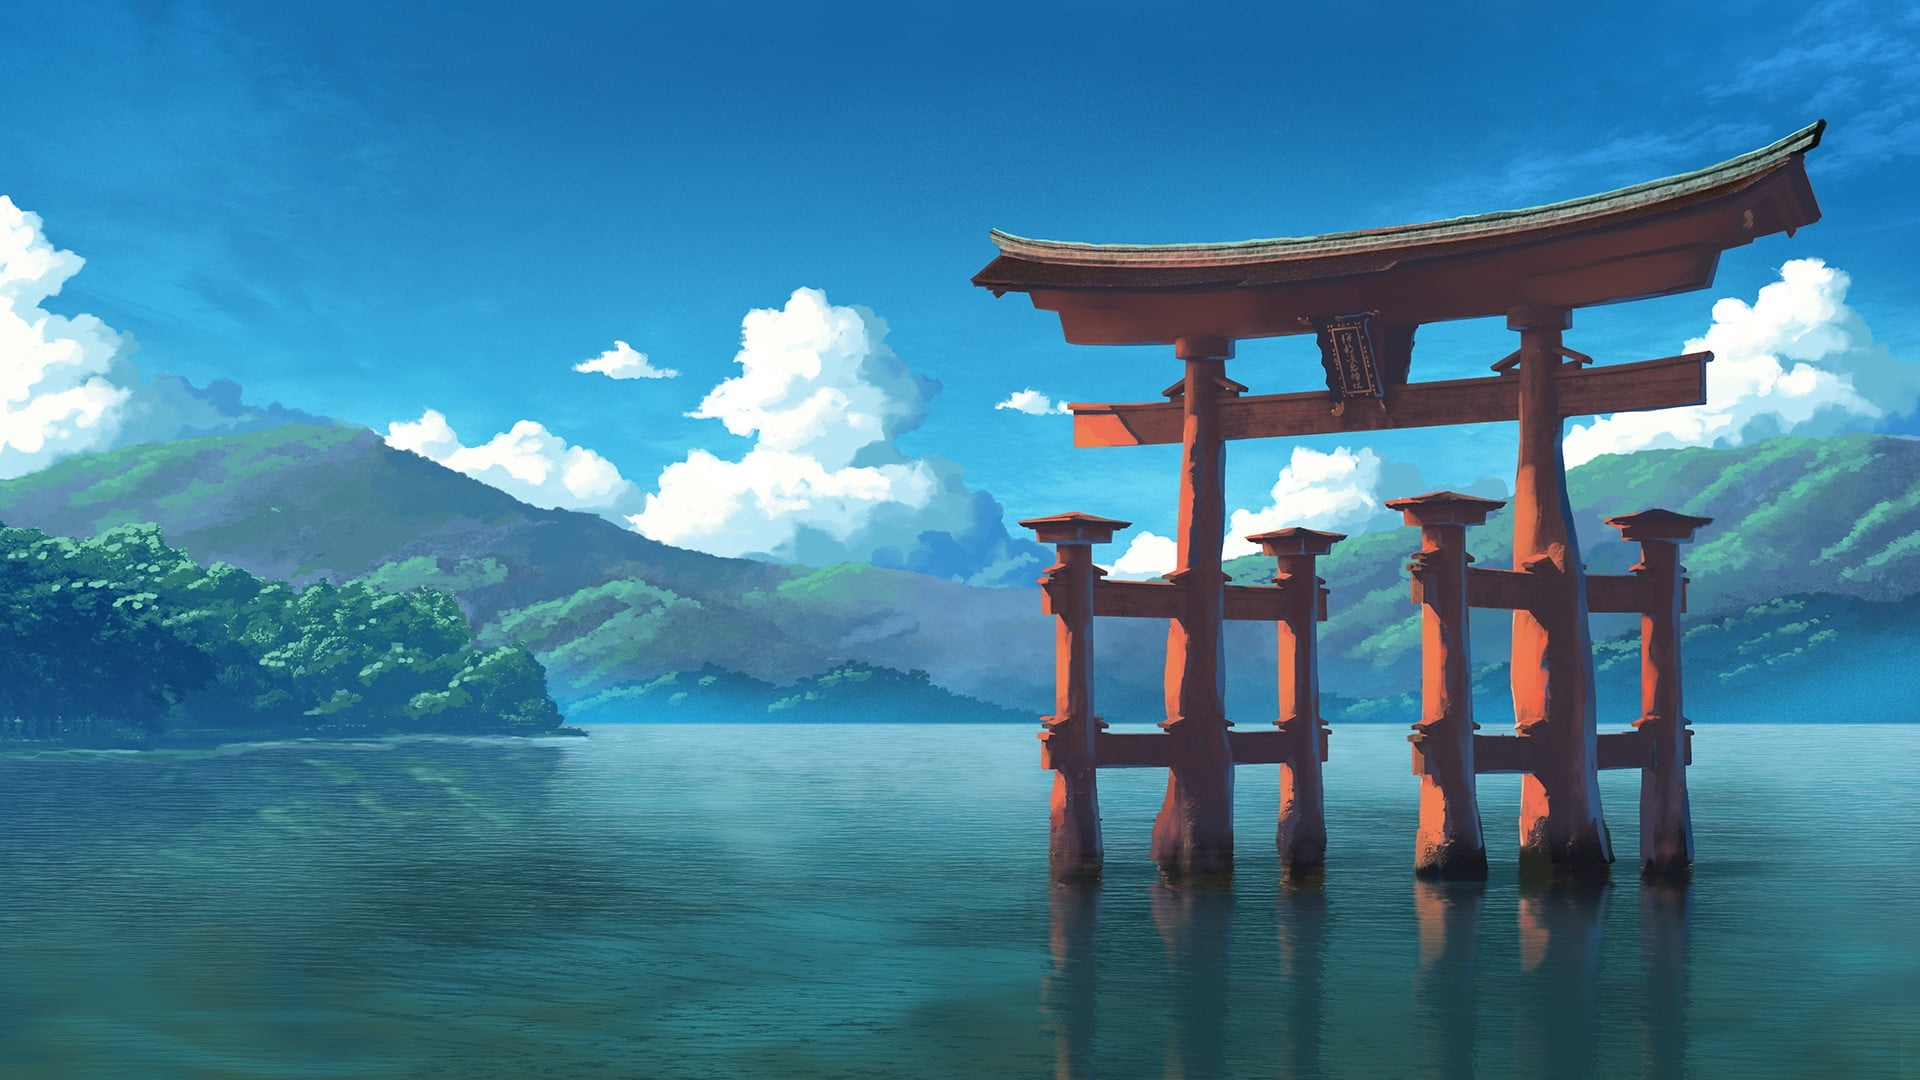 Torii Gate Wallpaper theme